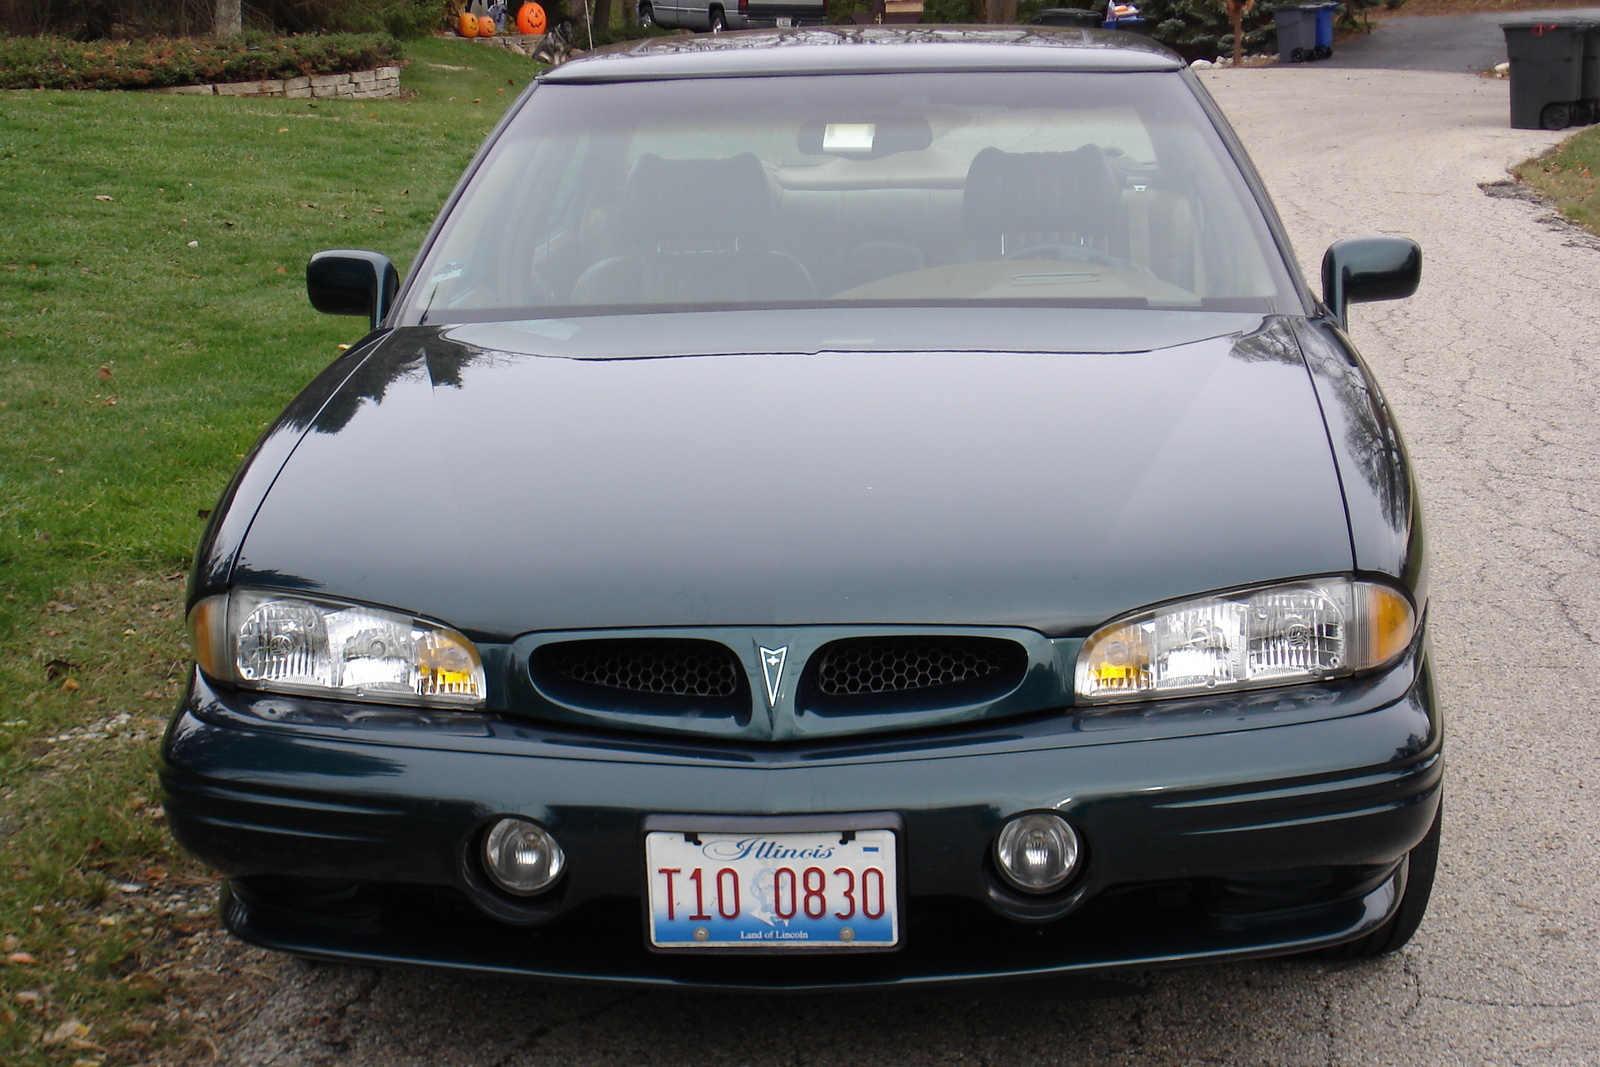 2001 pontiac bonneville ssei specs with 1993 Pontiac Bonneville Overview C3351 on 2003 Pontiac Bonneville SSEi Pictures T9437 pi35654278 likewise Engine 40358557 together with 1999 Pontiac Bonneville Pictures C3315 pi36381807 likewise Engine additionally 1993 Pontiac Bonneville Overview C3351.